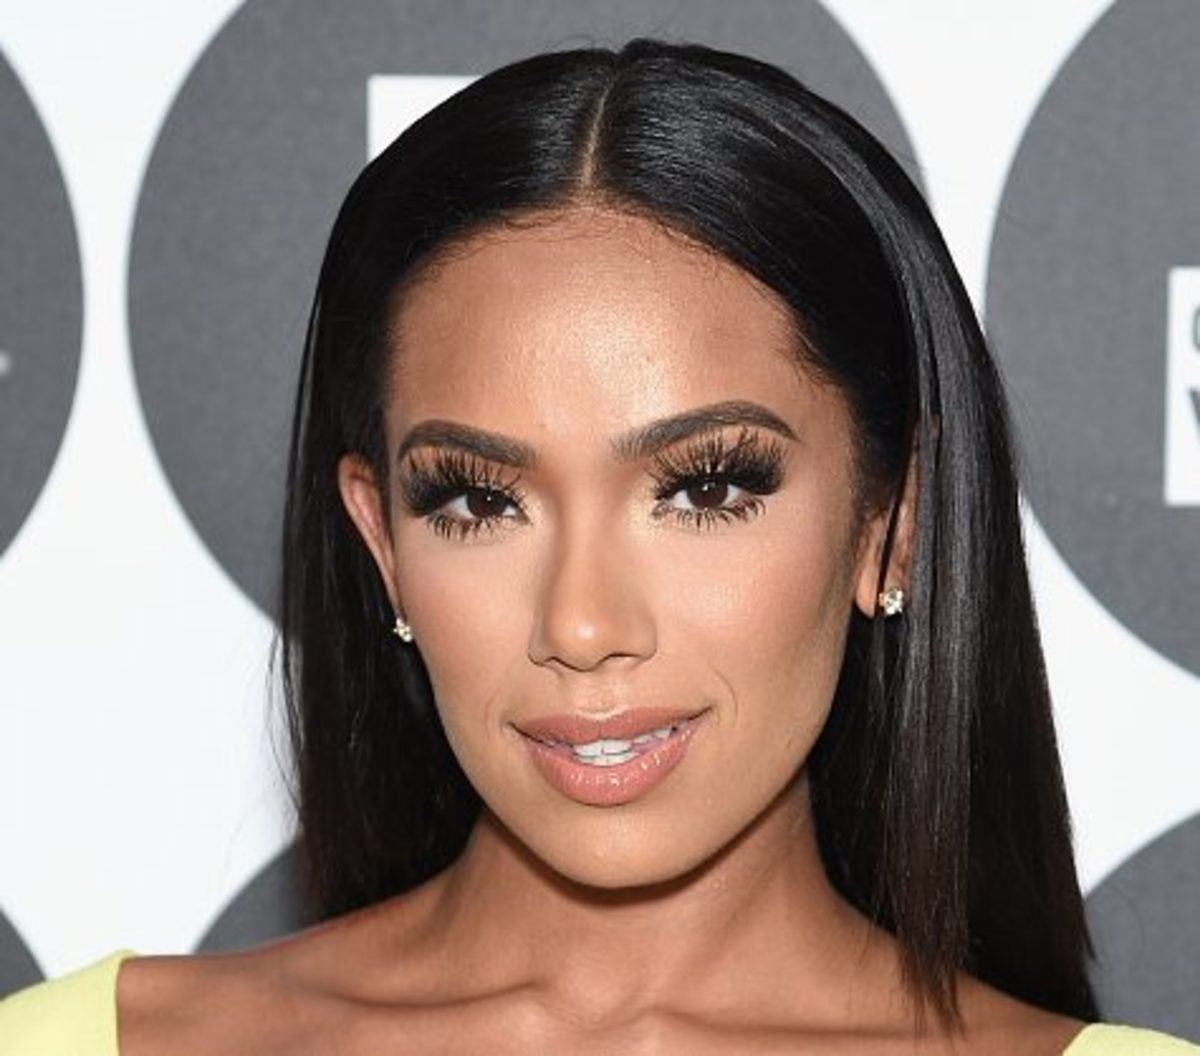 """erica-mena-celebrates-the-birthday-of-her-bff-her-photo-triggers-backlash"""